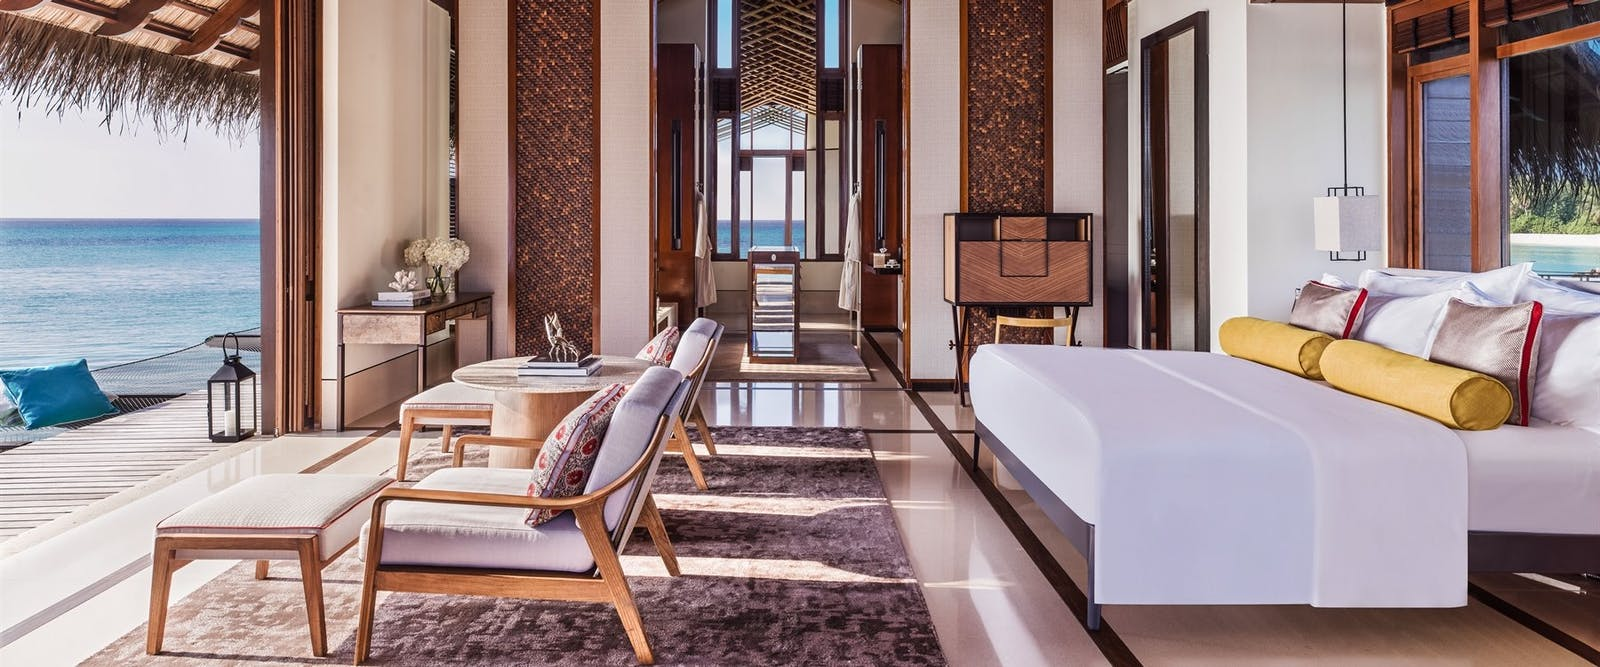 Grand Water Villa Master Bedroom at One&Only Reethi Rah, Maldives, Indian Ocean